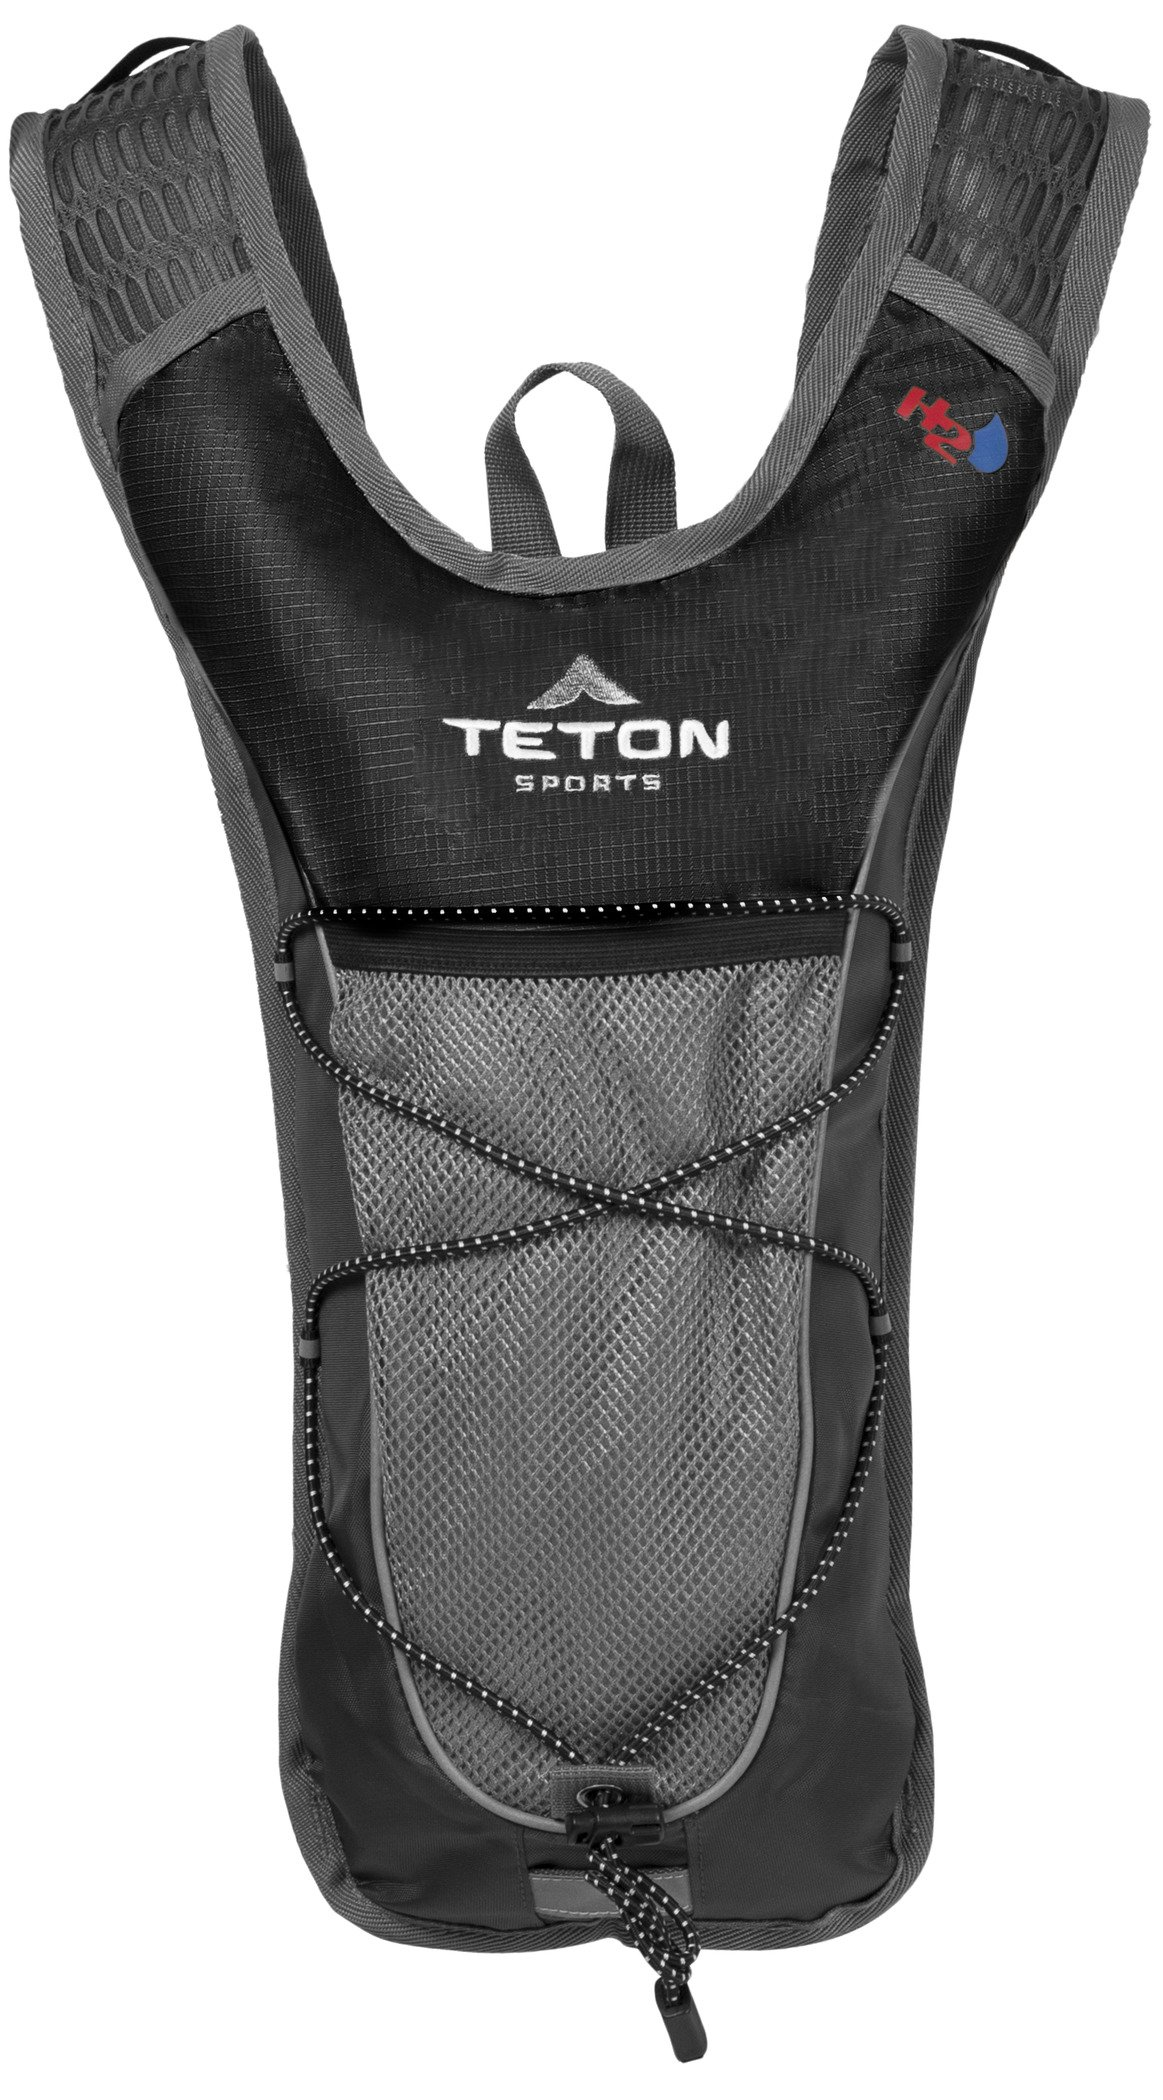 TETON Sports TrailRunner 2.0 Hydration Pack; Backpack for Hiking, Running and Cycling; Free 2-Liter Hydration Bladder; Black by TETON Sports